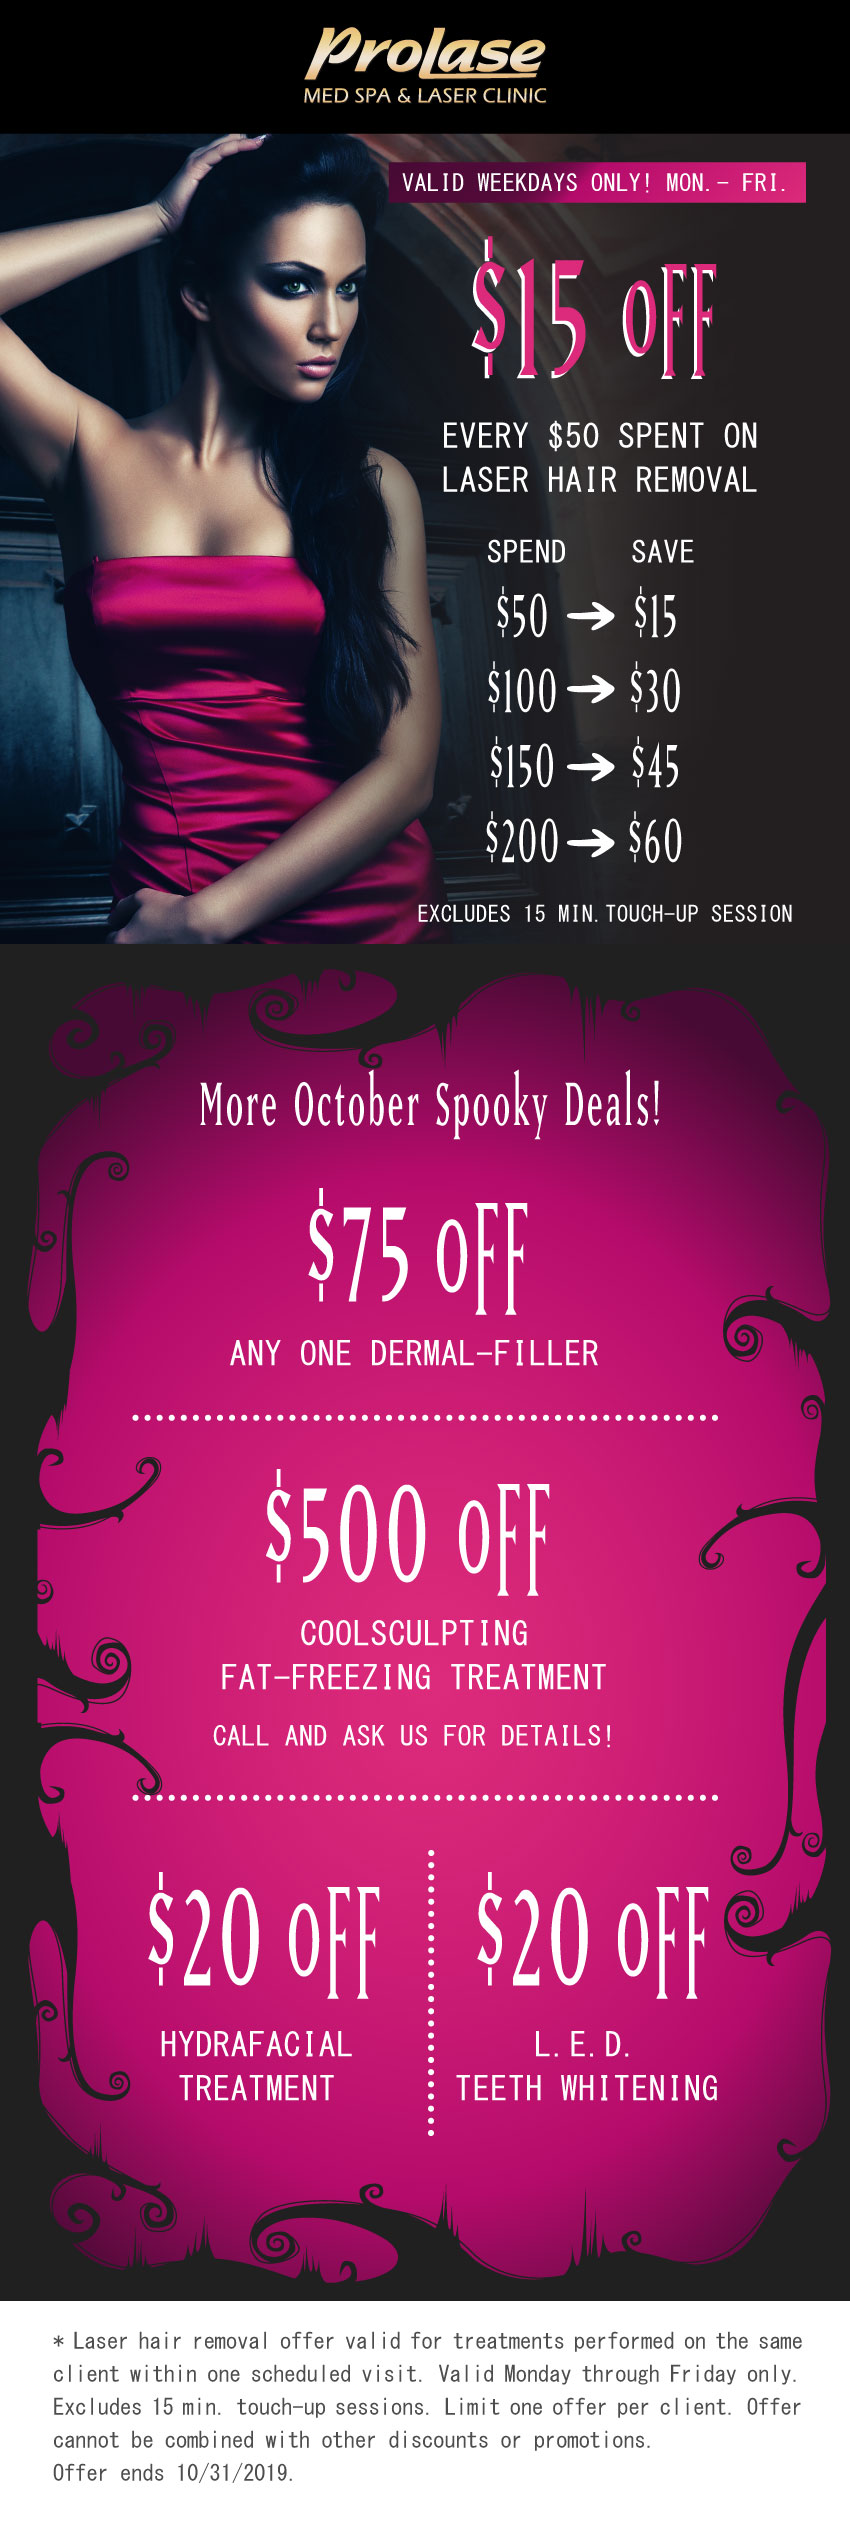 This image contains details of Prolase's October Monthly Special. In October, Monday through Friday, take $15 off every $50 spent on laser hair removal. Additional savings on other aesthetic treatments are available. Please call to learn more about all offers: 818-507-0909